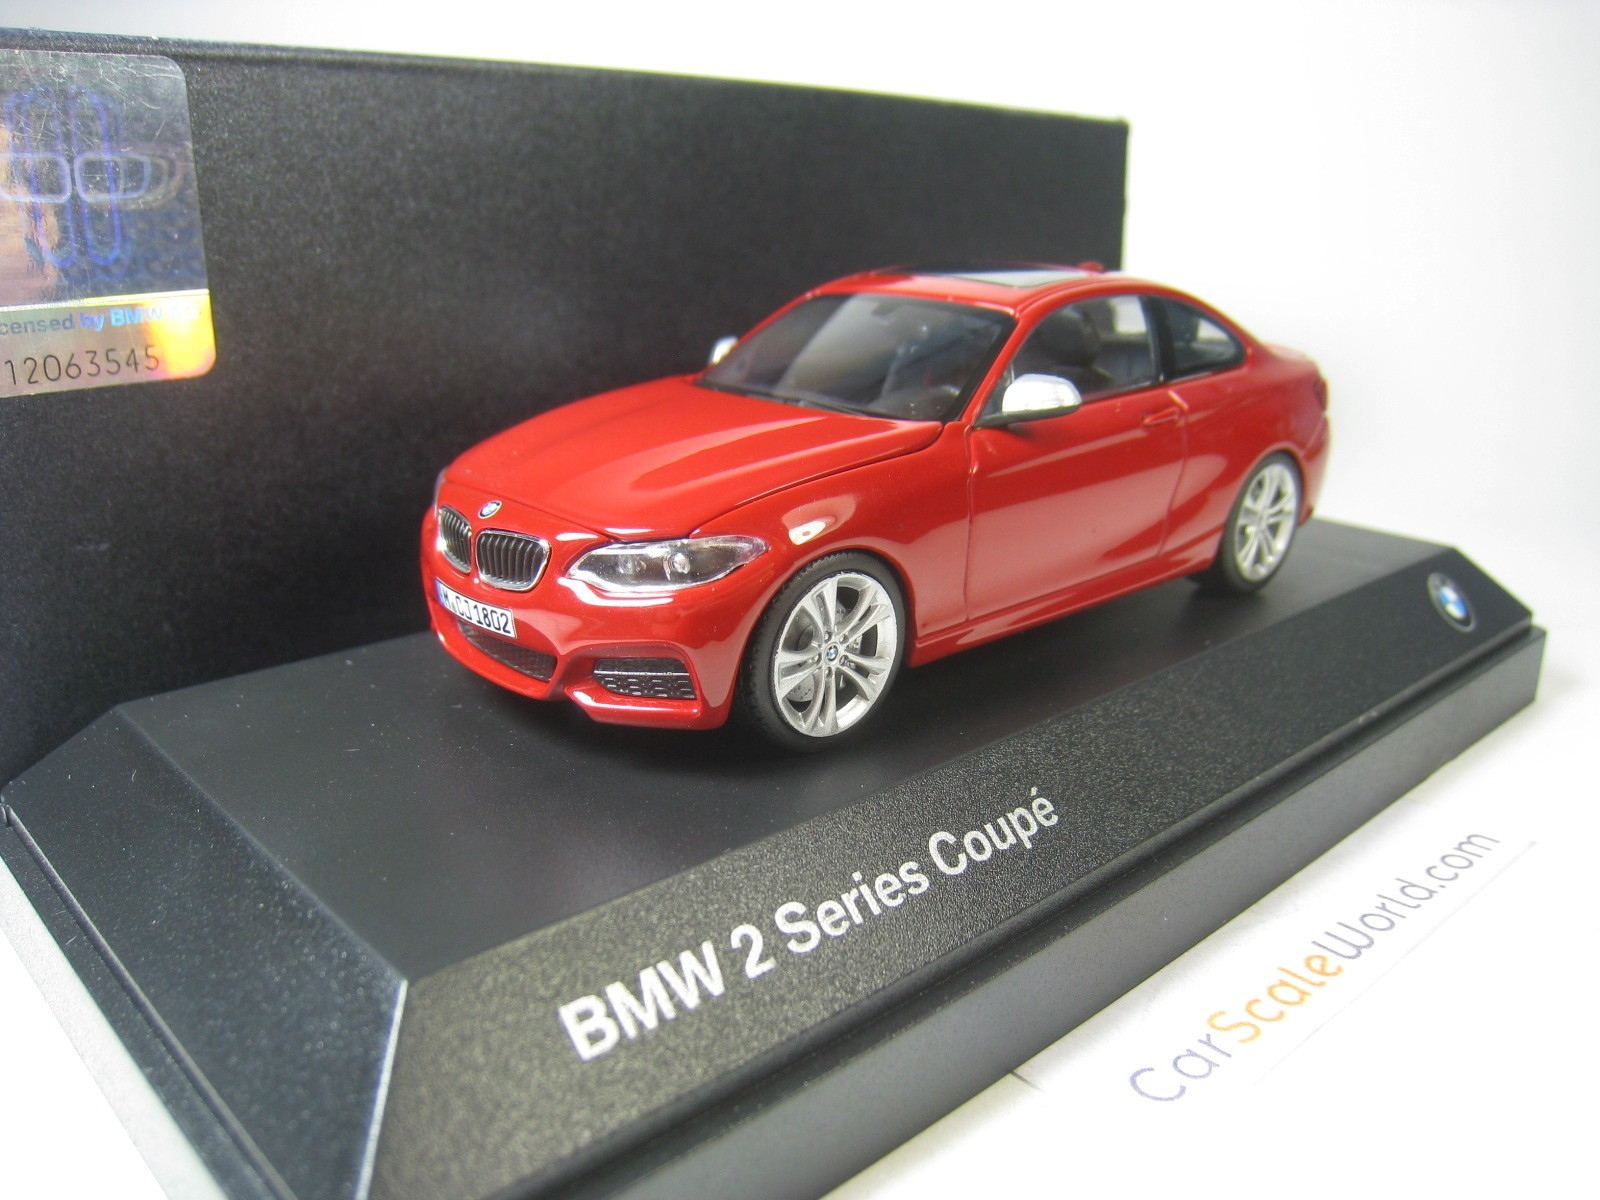 BMW 2 SERIES COUPE 1/43 PARAGON (RED)